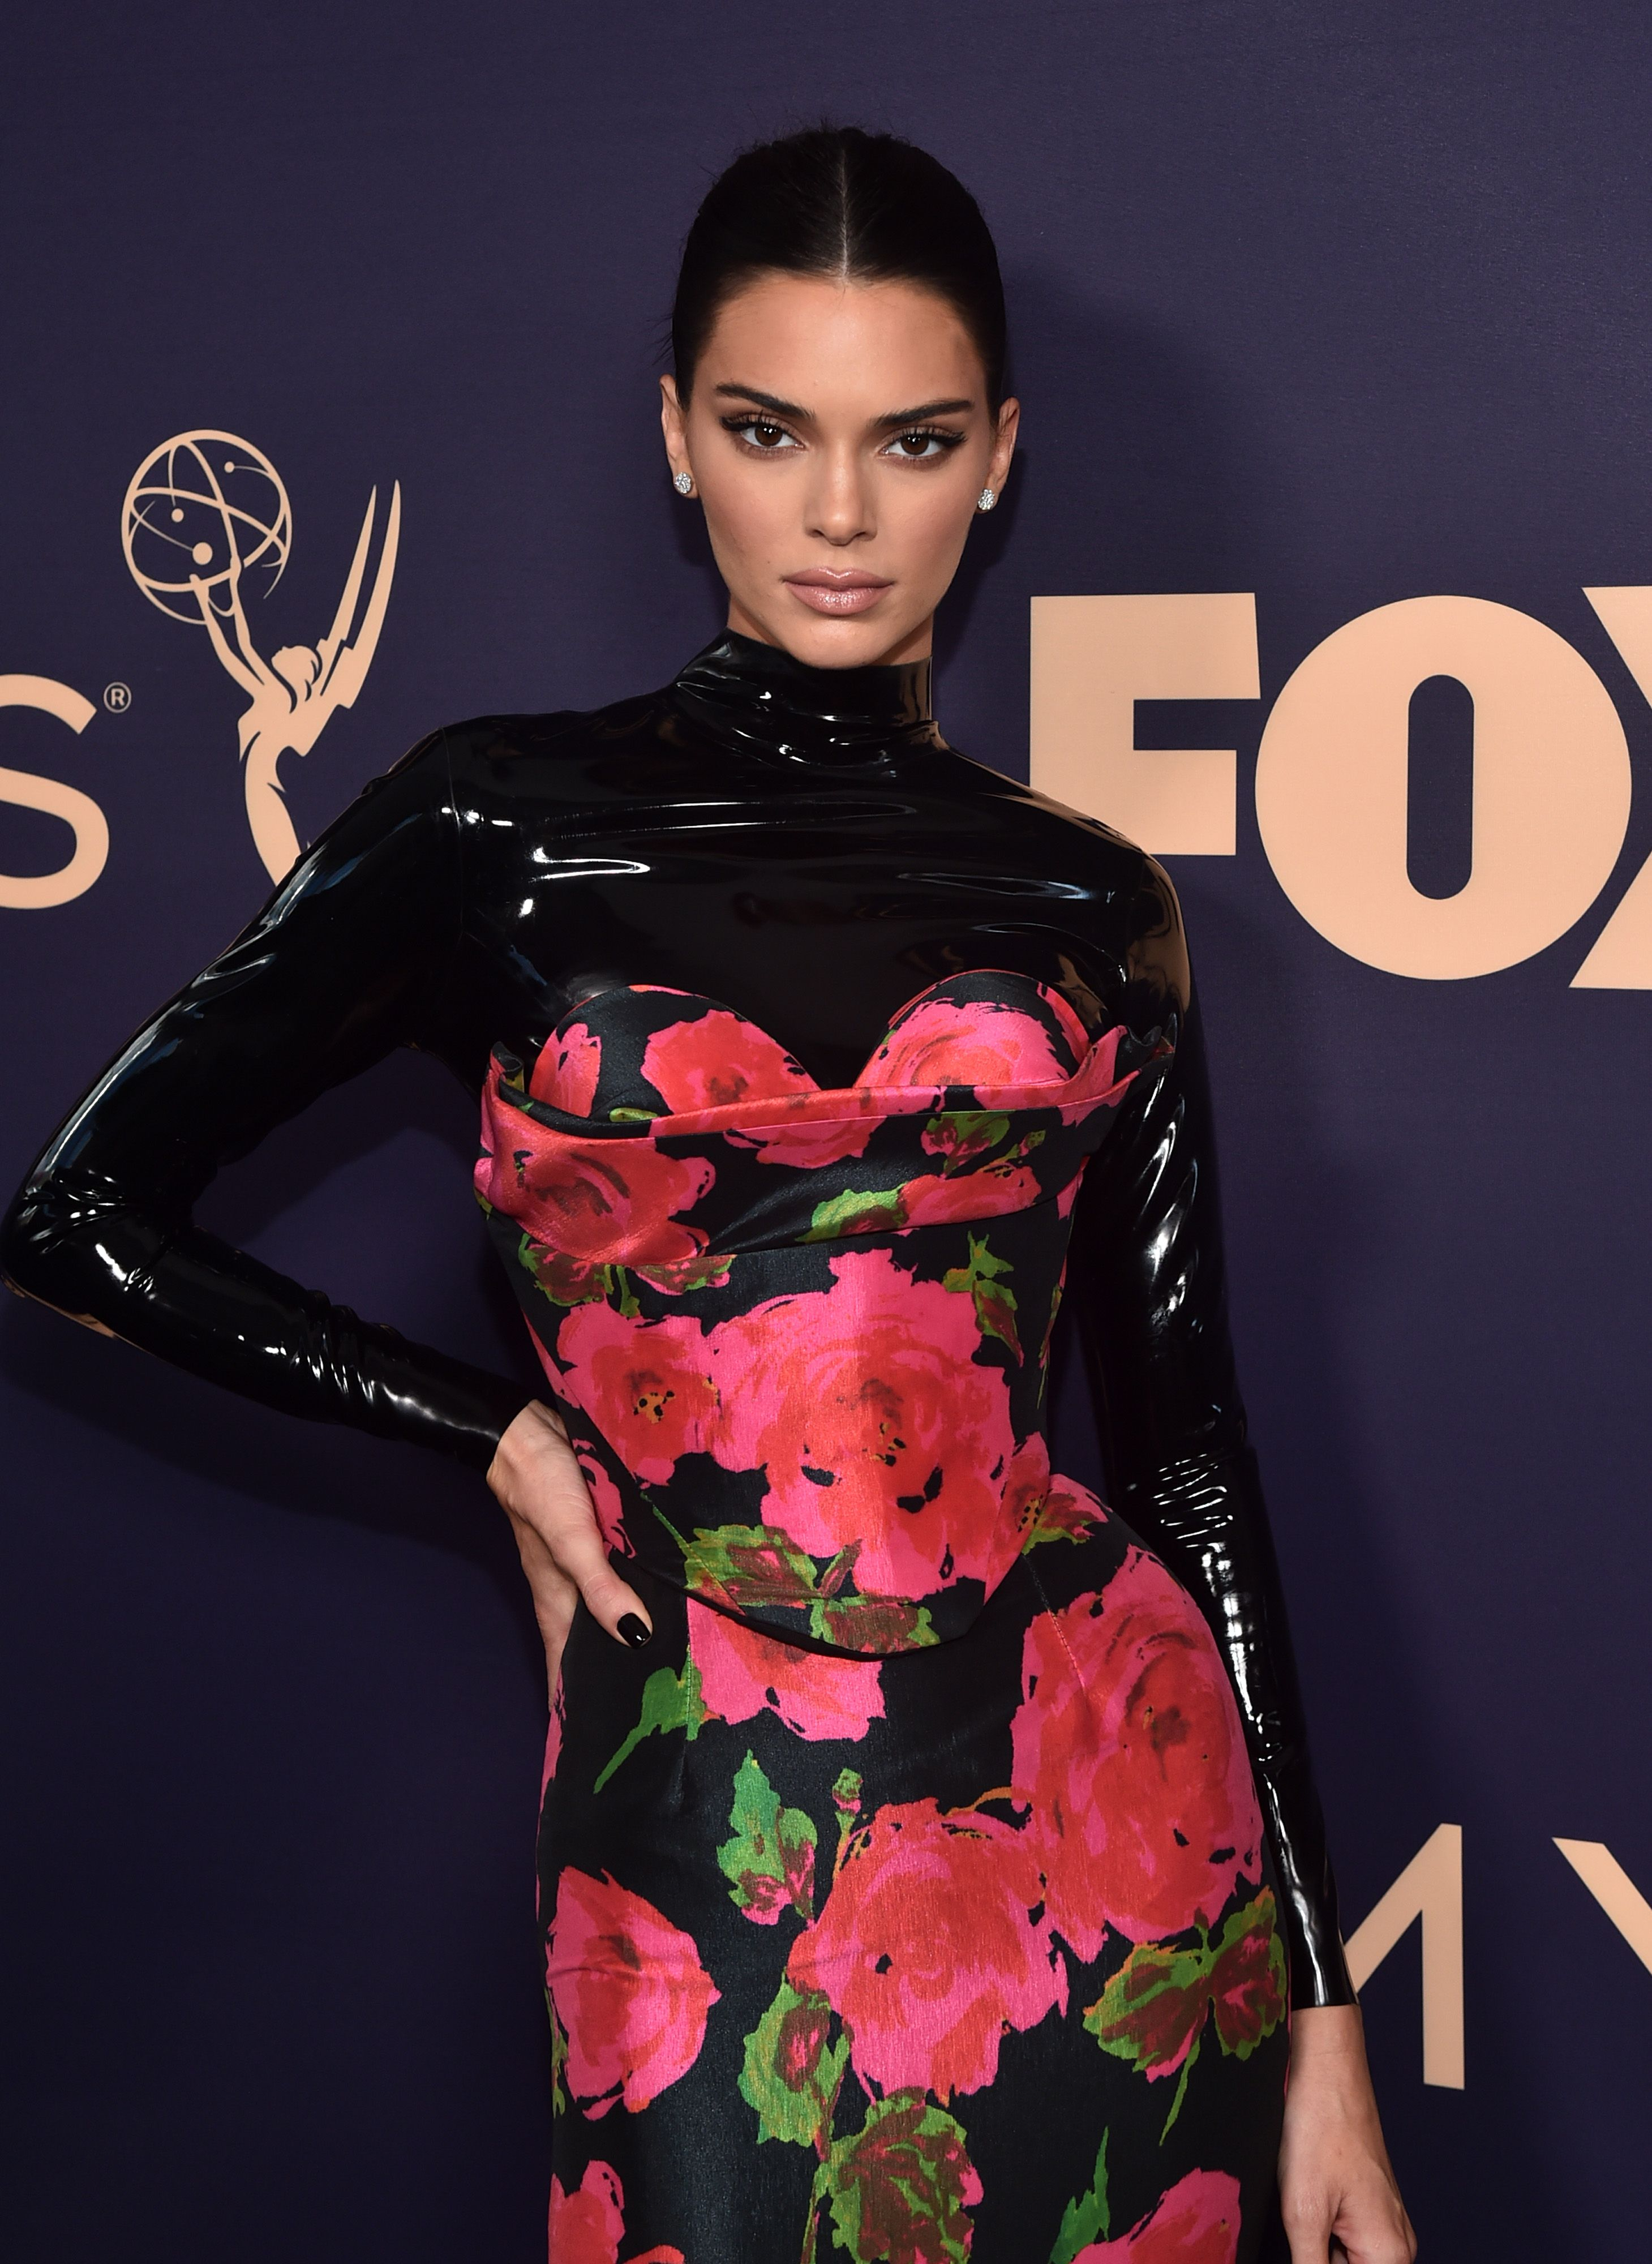 Kendall Jenner Is Back to Brunette and Wearing a Latex Floral Gown at the 2019 Emmys